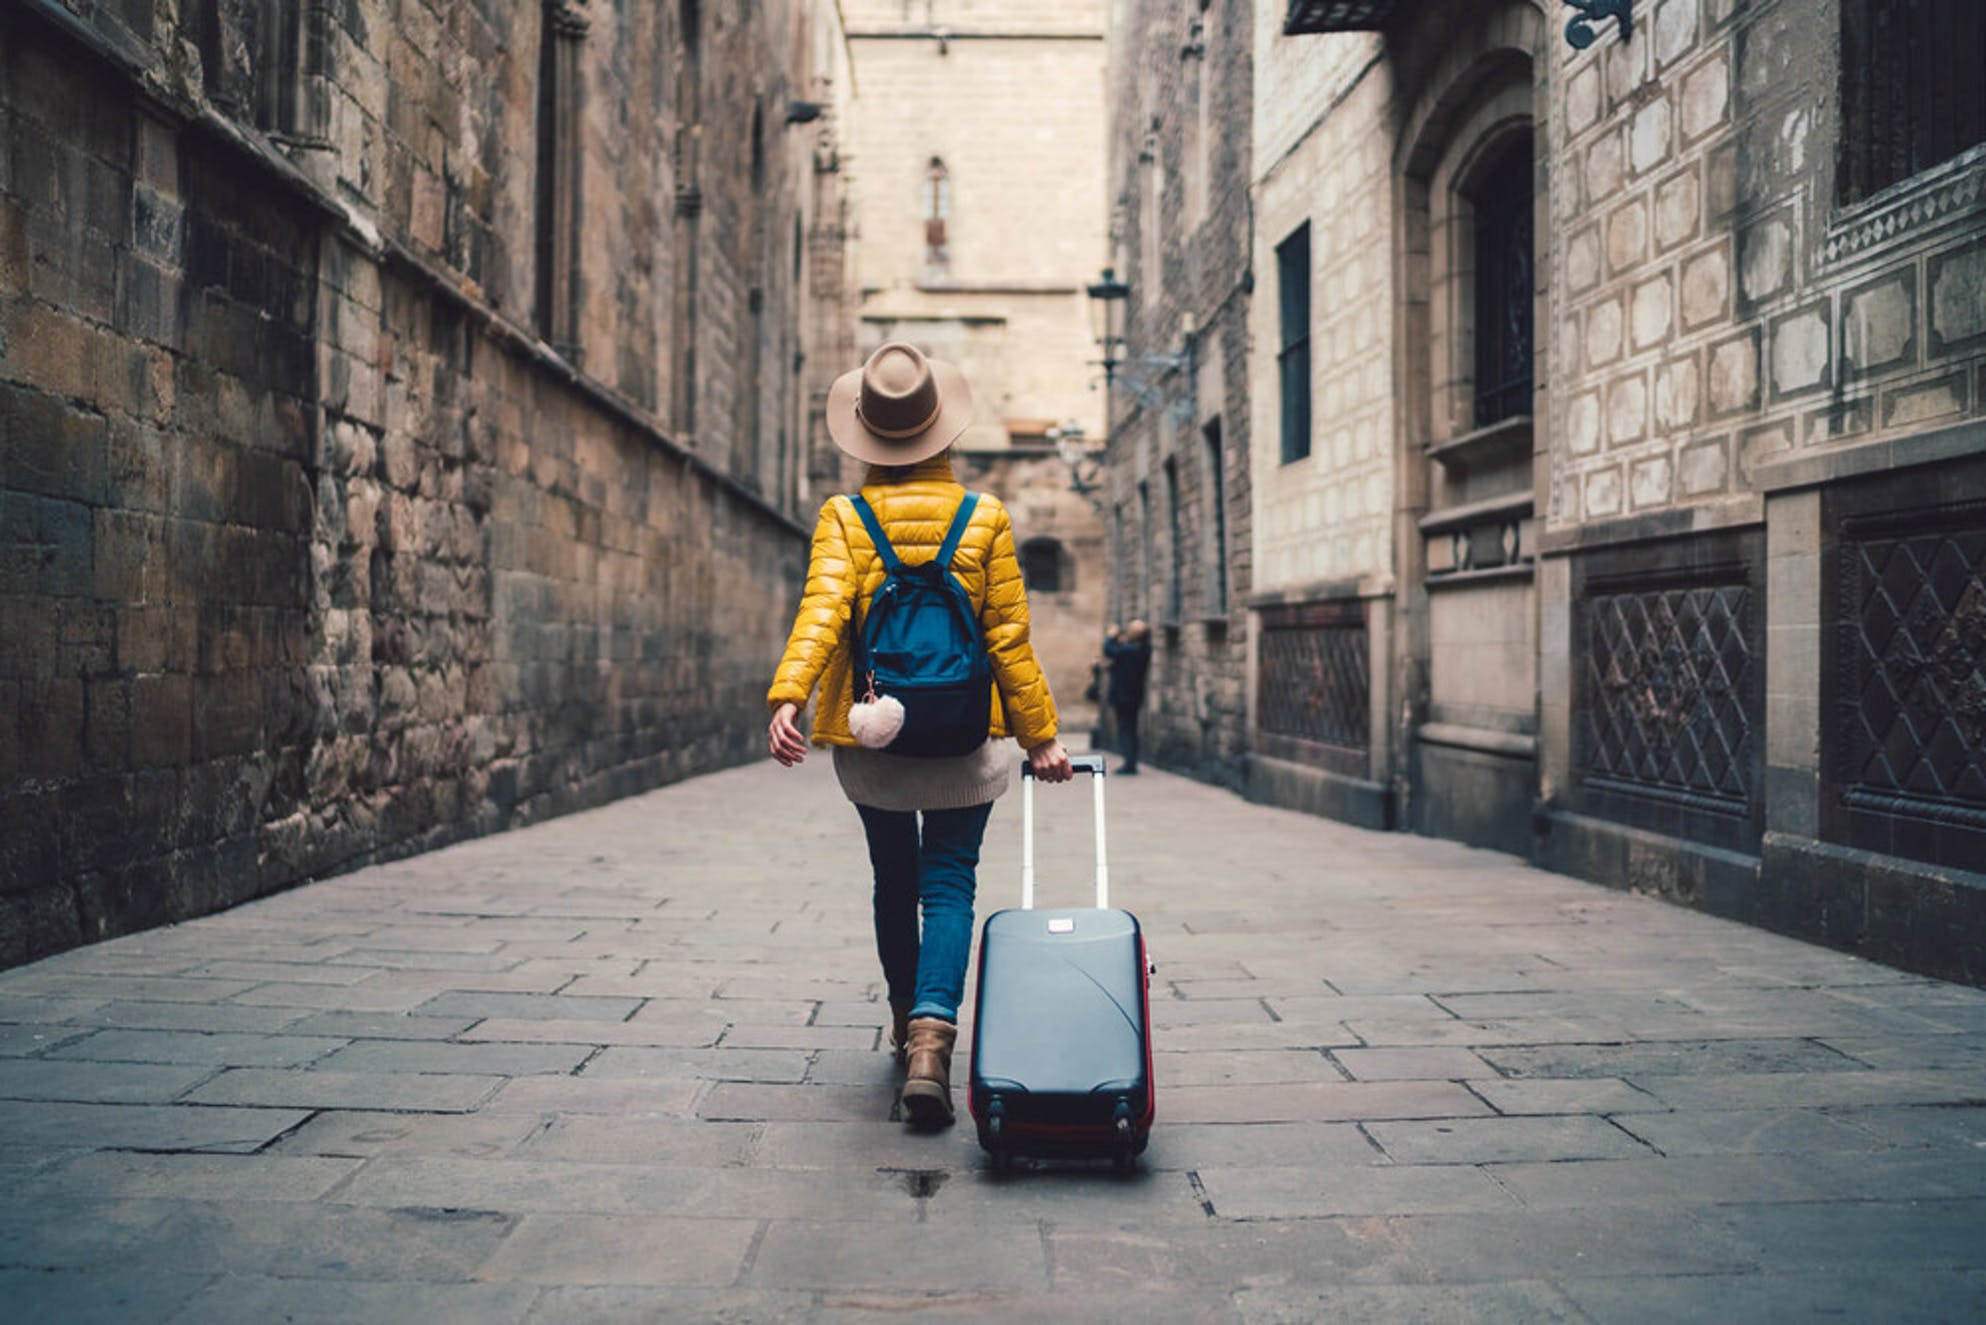 Travel insurance is a waste of money